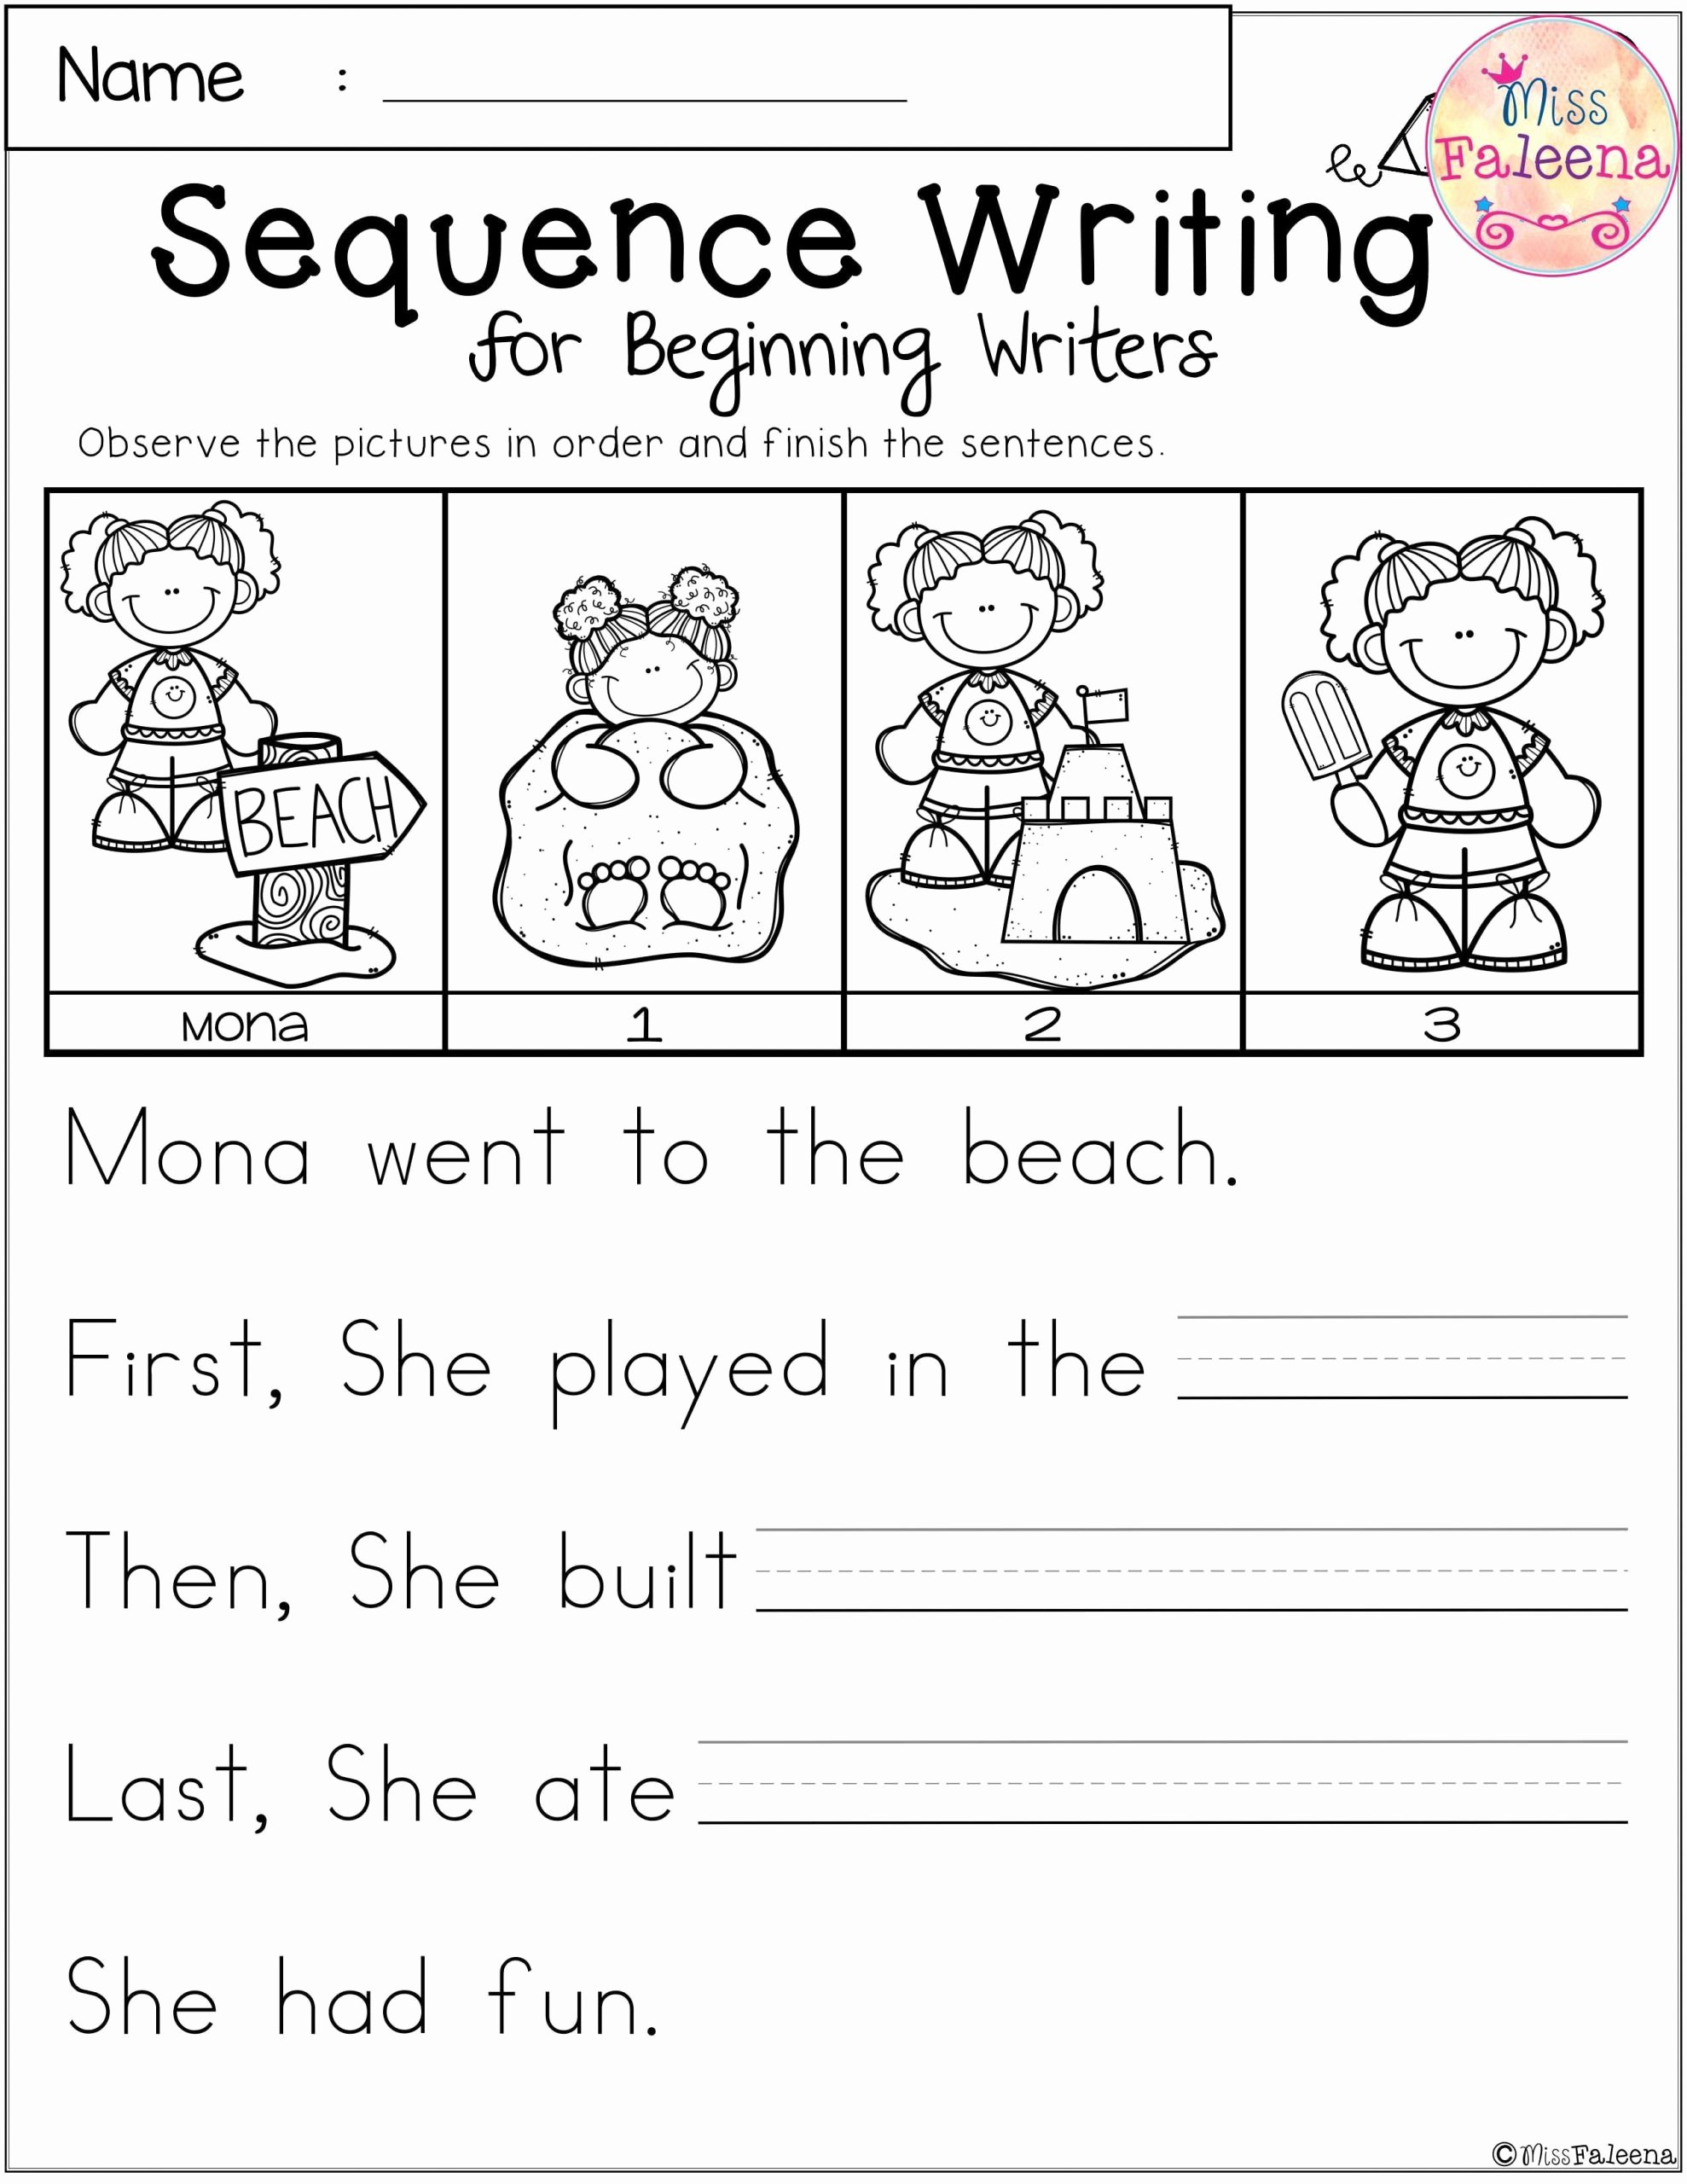 Story Sequencing Worksheets for Preschoolers Awesome 20 Sequencing Worksheets for Kindergarten